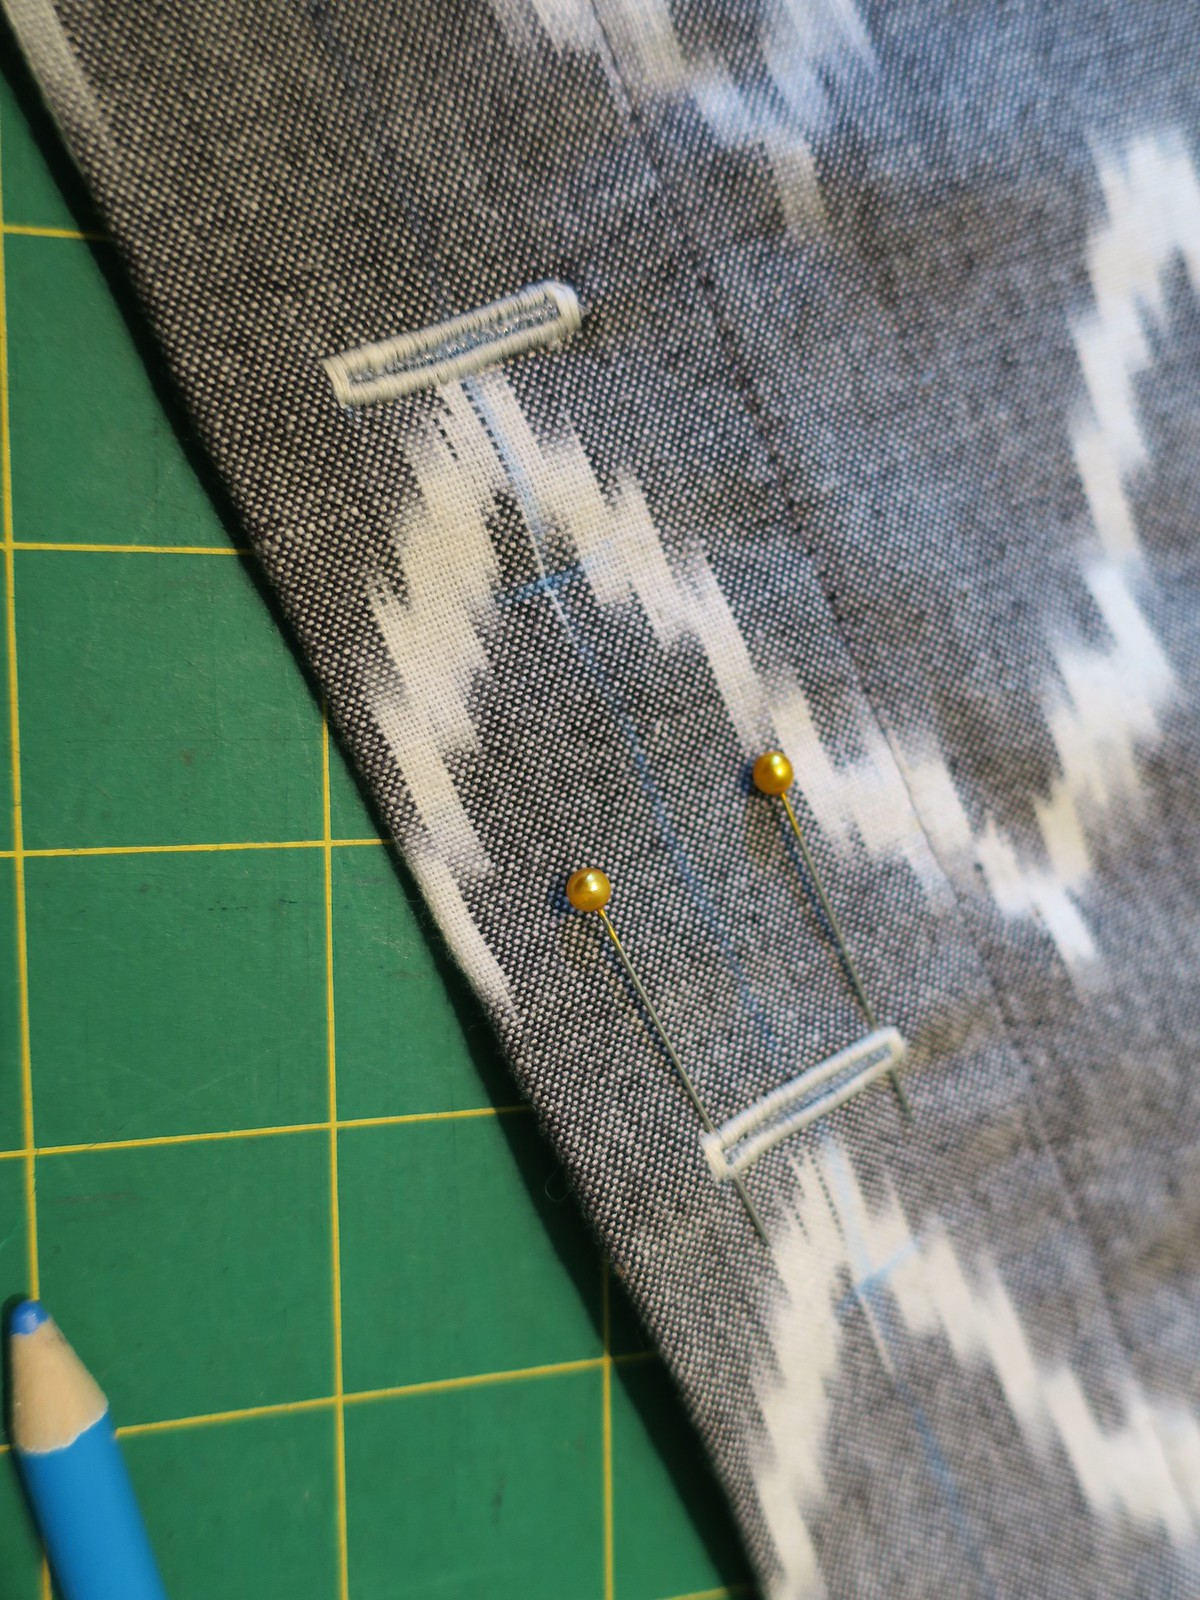 Button hole sewing tips